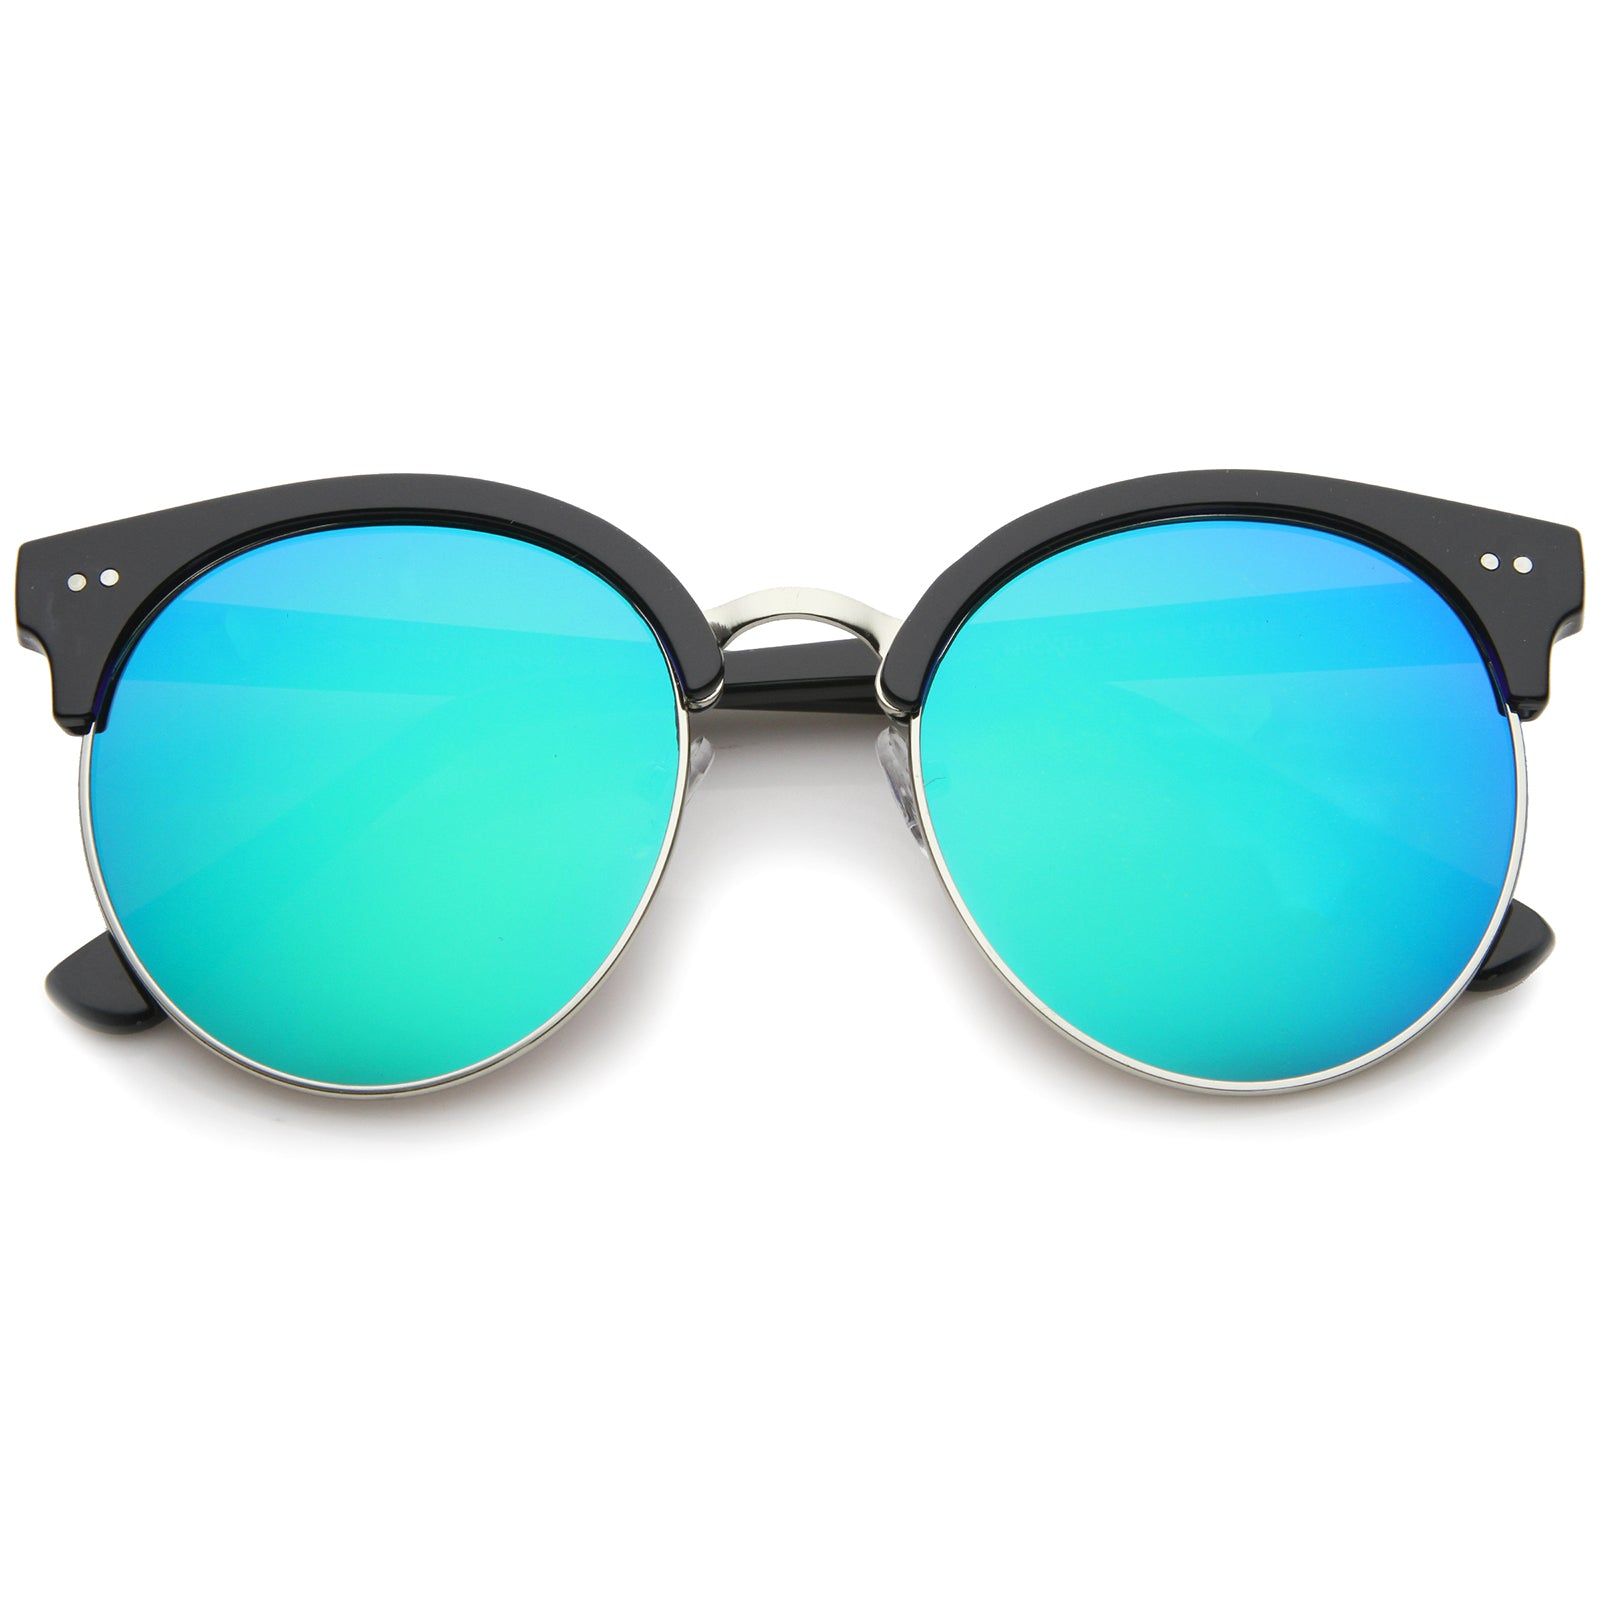 Womens Oversized Sunglasses With UV400 Protected Mirrored Lens - sunglass.la - 5